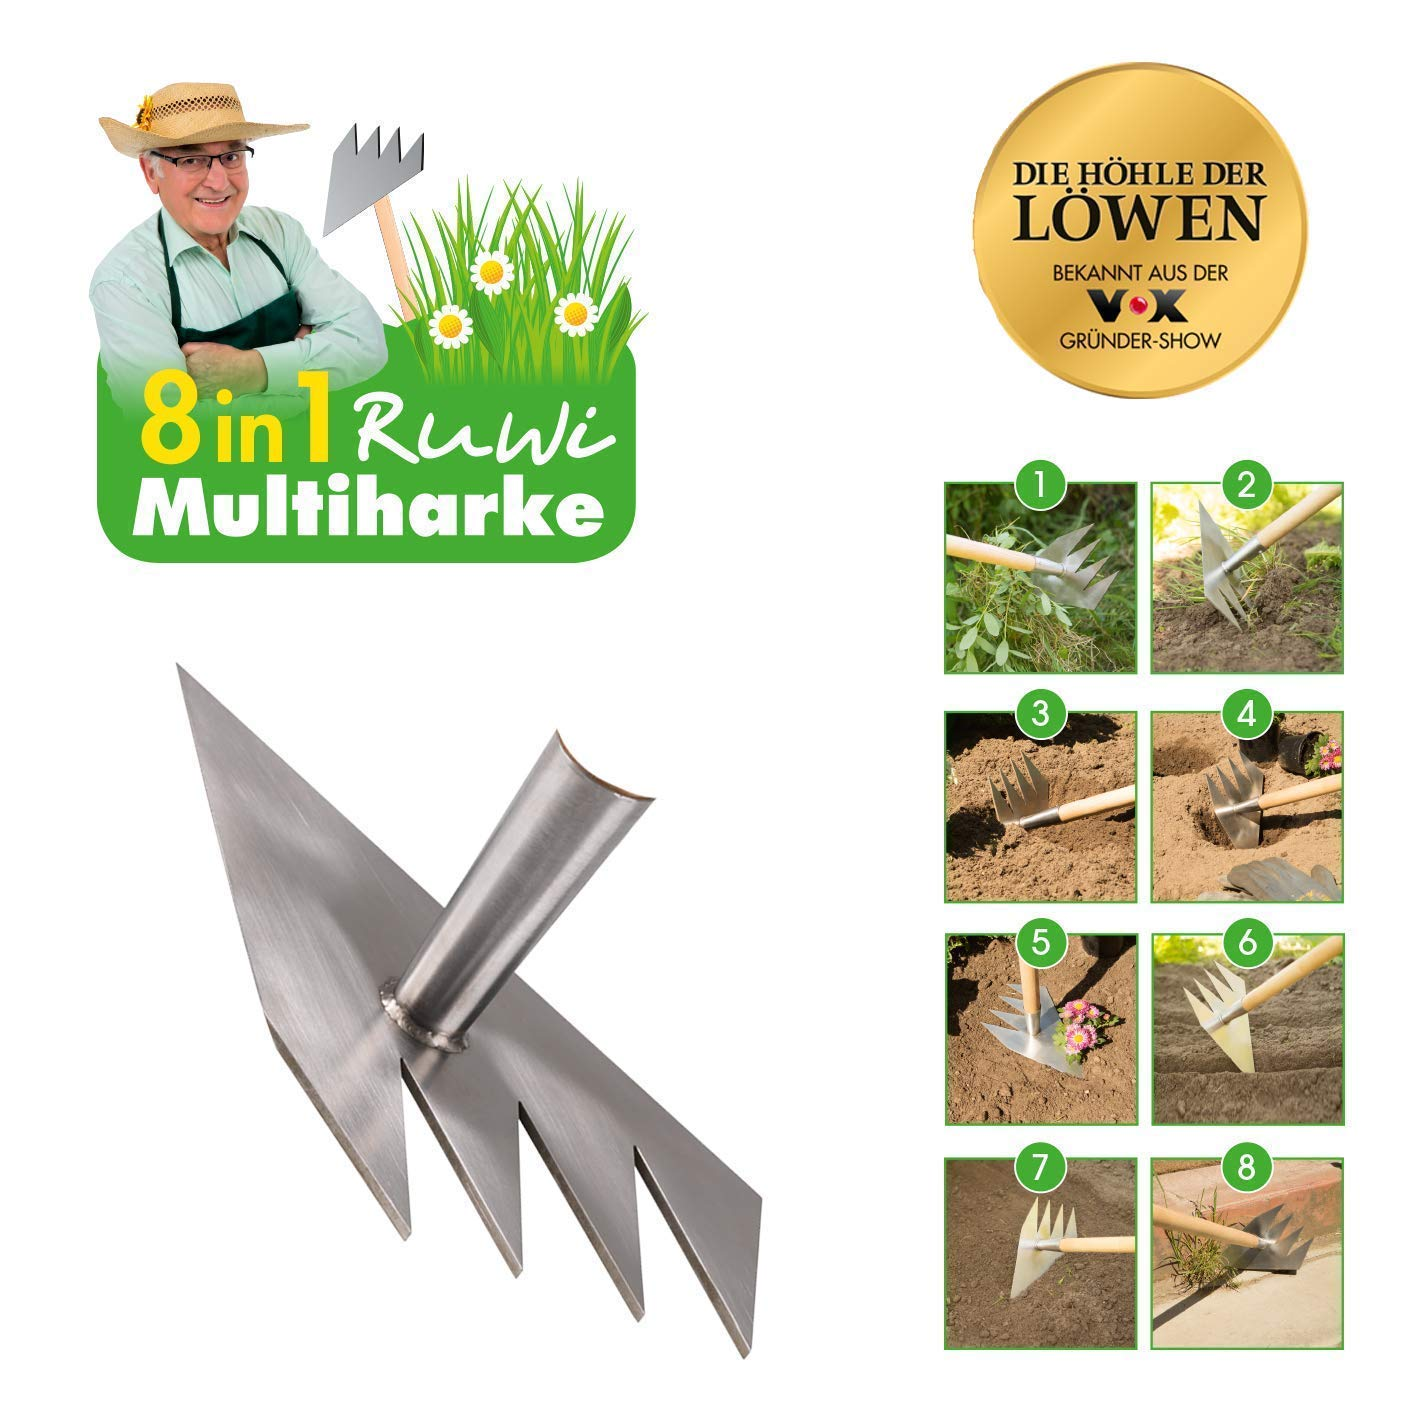 Spreading Mulch or Other Material Evenly and Leveling Areas Before Planting FBA-PAZI Qifen Garden Metal Rake Head Professional for Loosening or Breaking Up Compacted Soil